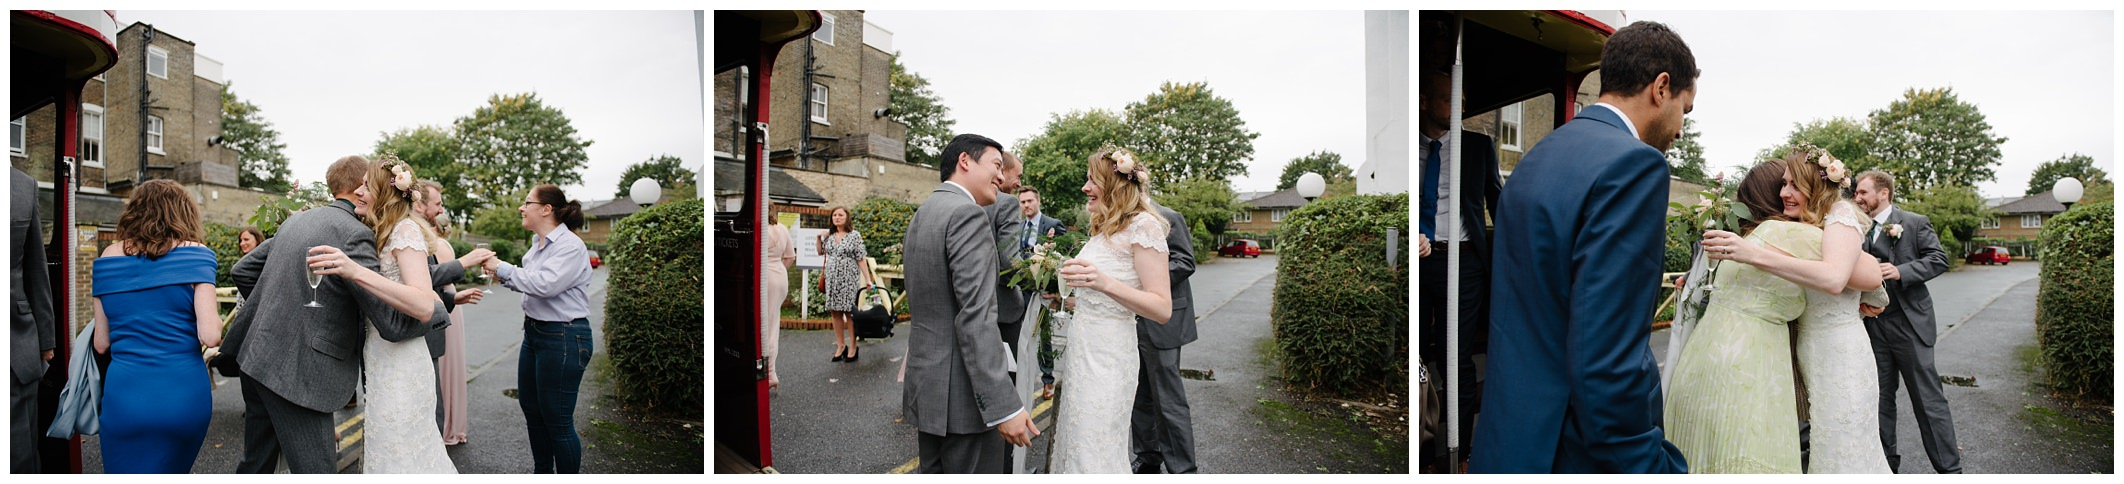 asylum_chapel_peckham_rosendale_wedding_jude_browne_photography_0133.jpg